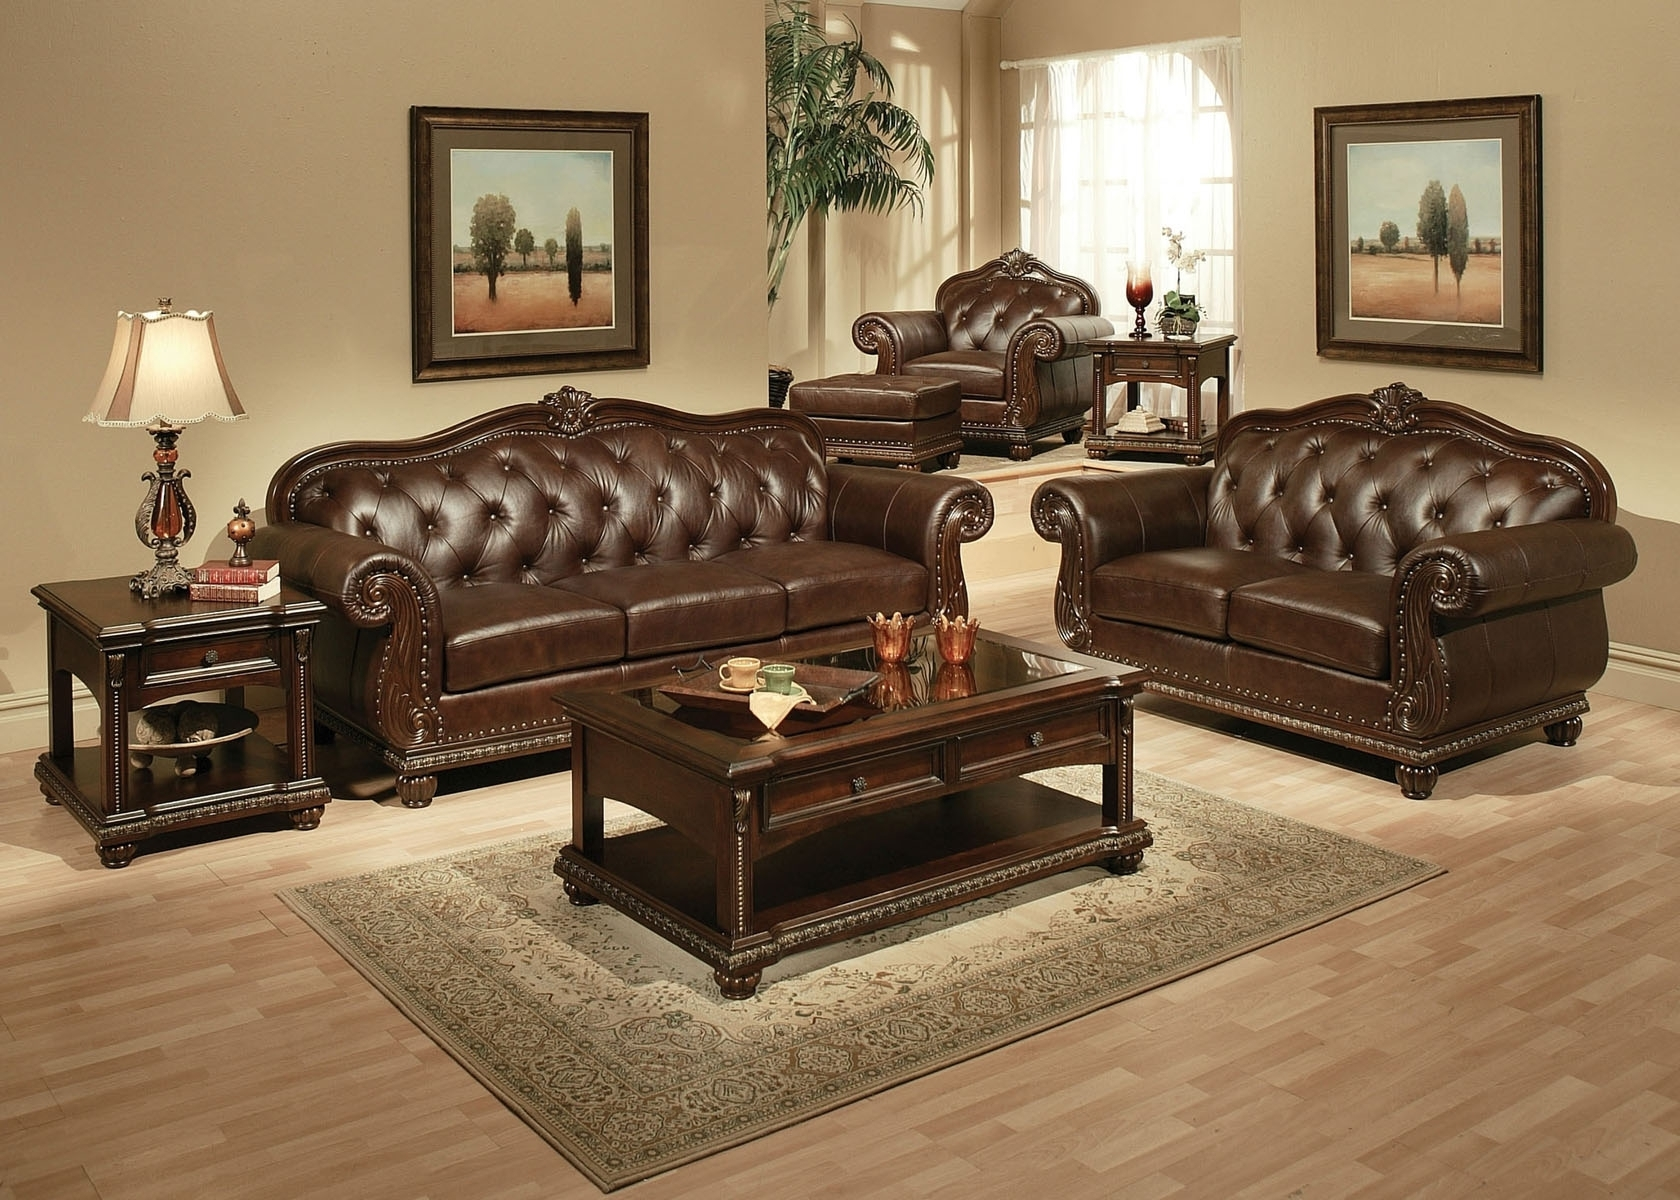 Well Liked Traditional Sofas And Chairs In Furniture: Awesome Traditional Living Room Furniture Traditional (View 19 of 20)